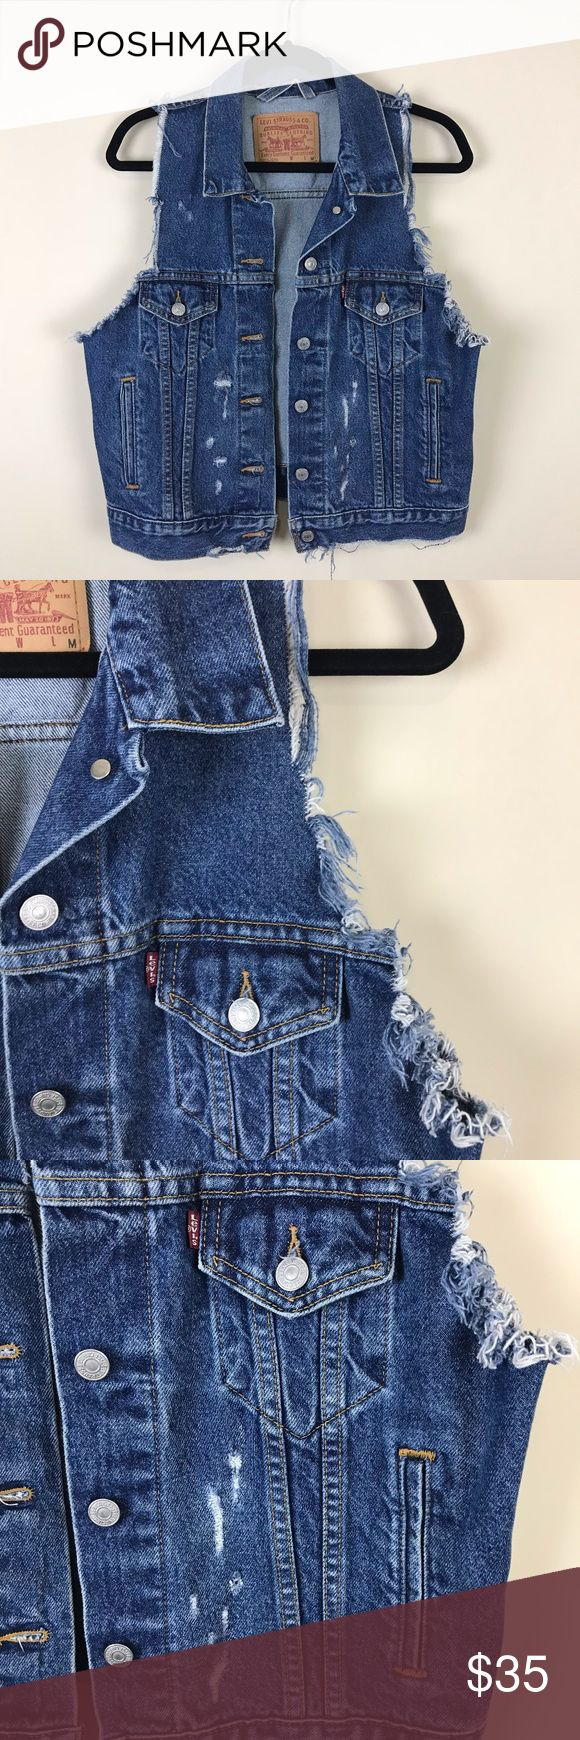 "LEVIS DISTRESSED DENIM JACKET VEST MEDIUM LEVIS MEDIUM DISTRESSED DESTROYED BLUE DENIM JEAN JACKET VEST. RAW HEM SLEEVES. BLEACH SPOTS THRU OUT. WOMEN MEDIUM. NO FLAWS. PIT TO PIT 20"" LENGTH 21"" J THROWBACK 80S RETRO,HIPSTER,CASUAL Levi's Jackets & Coats Vests"